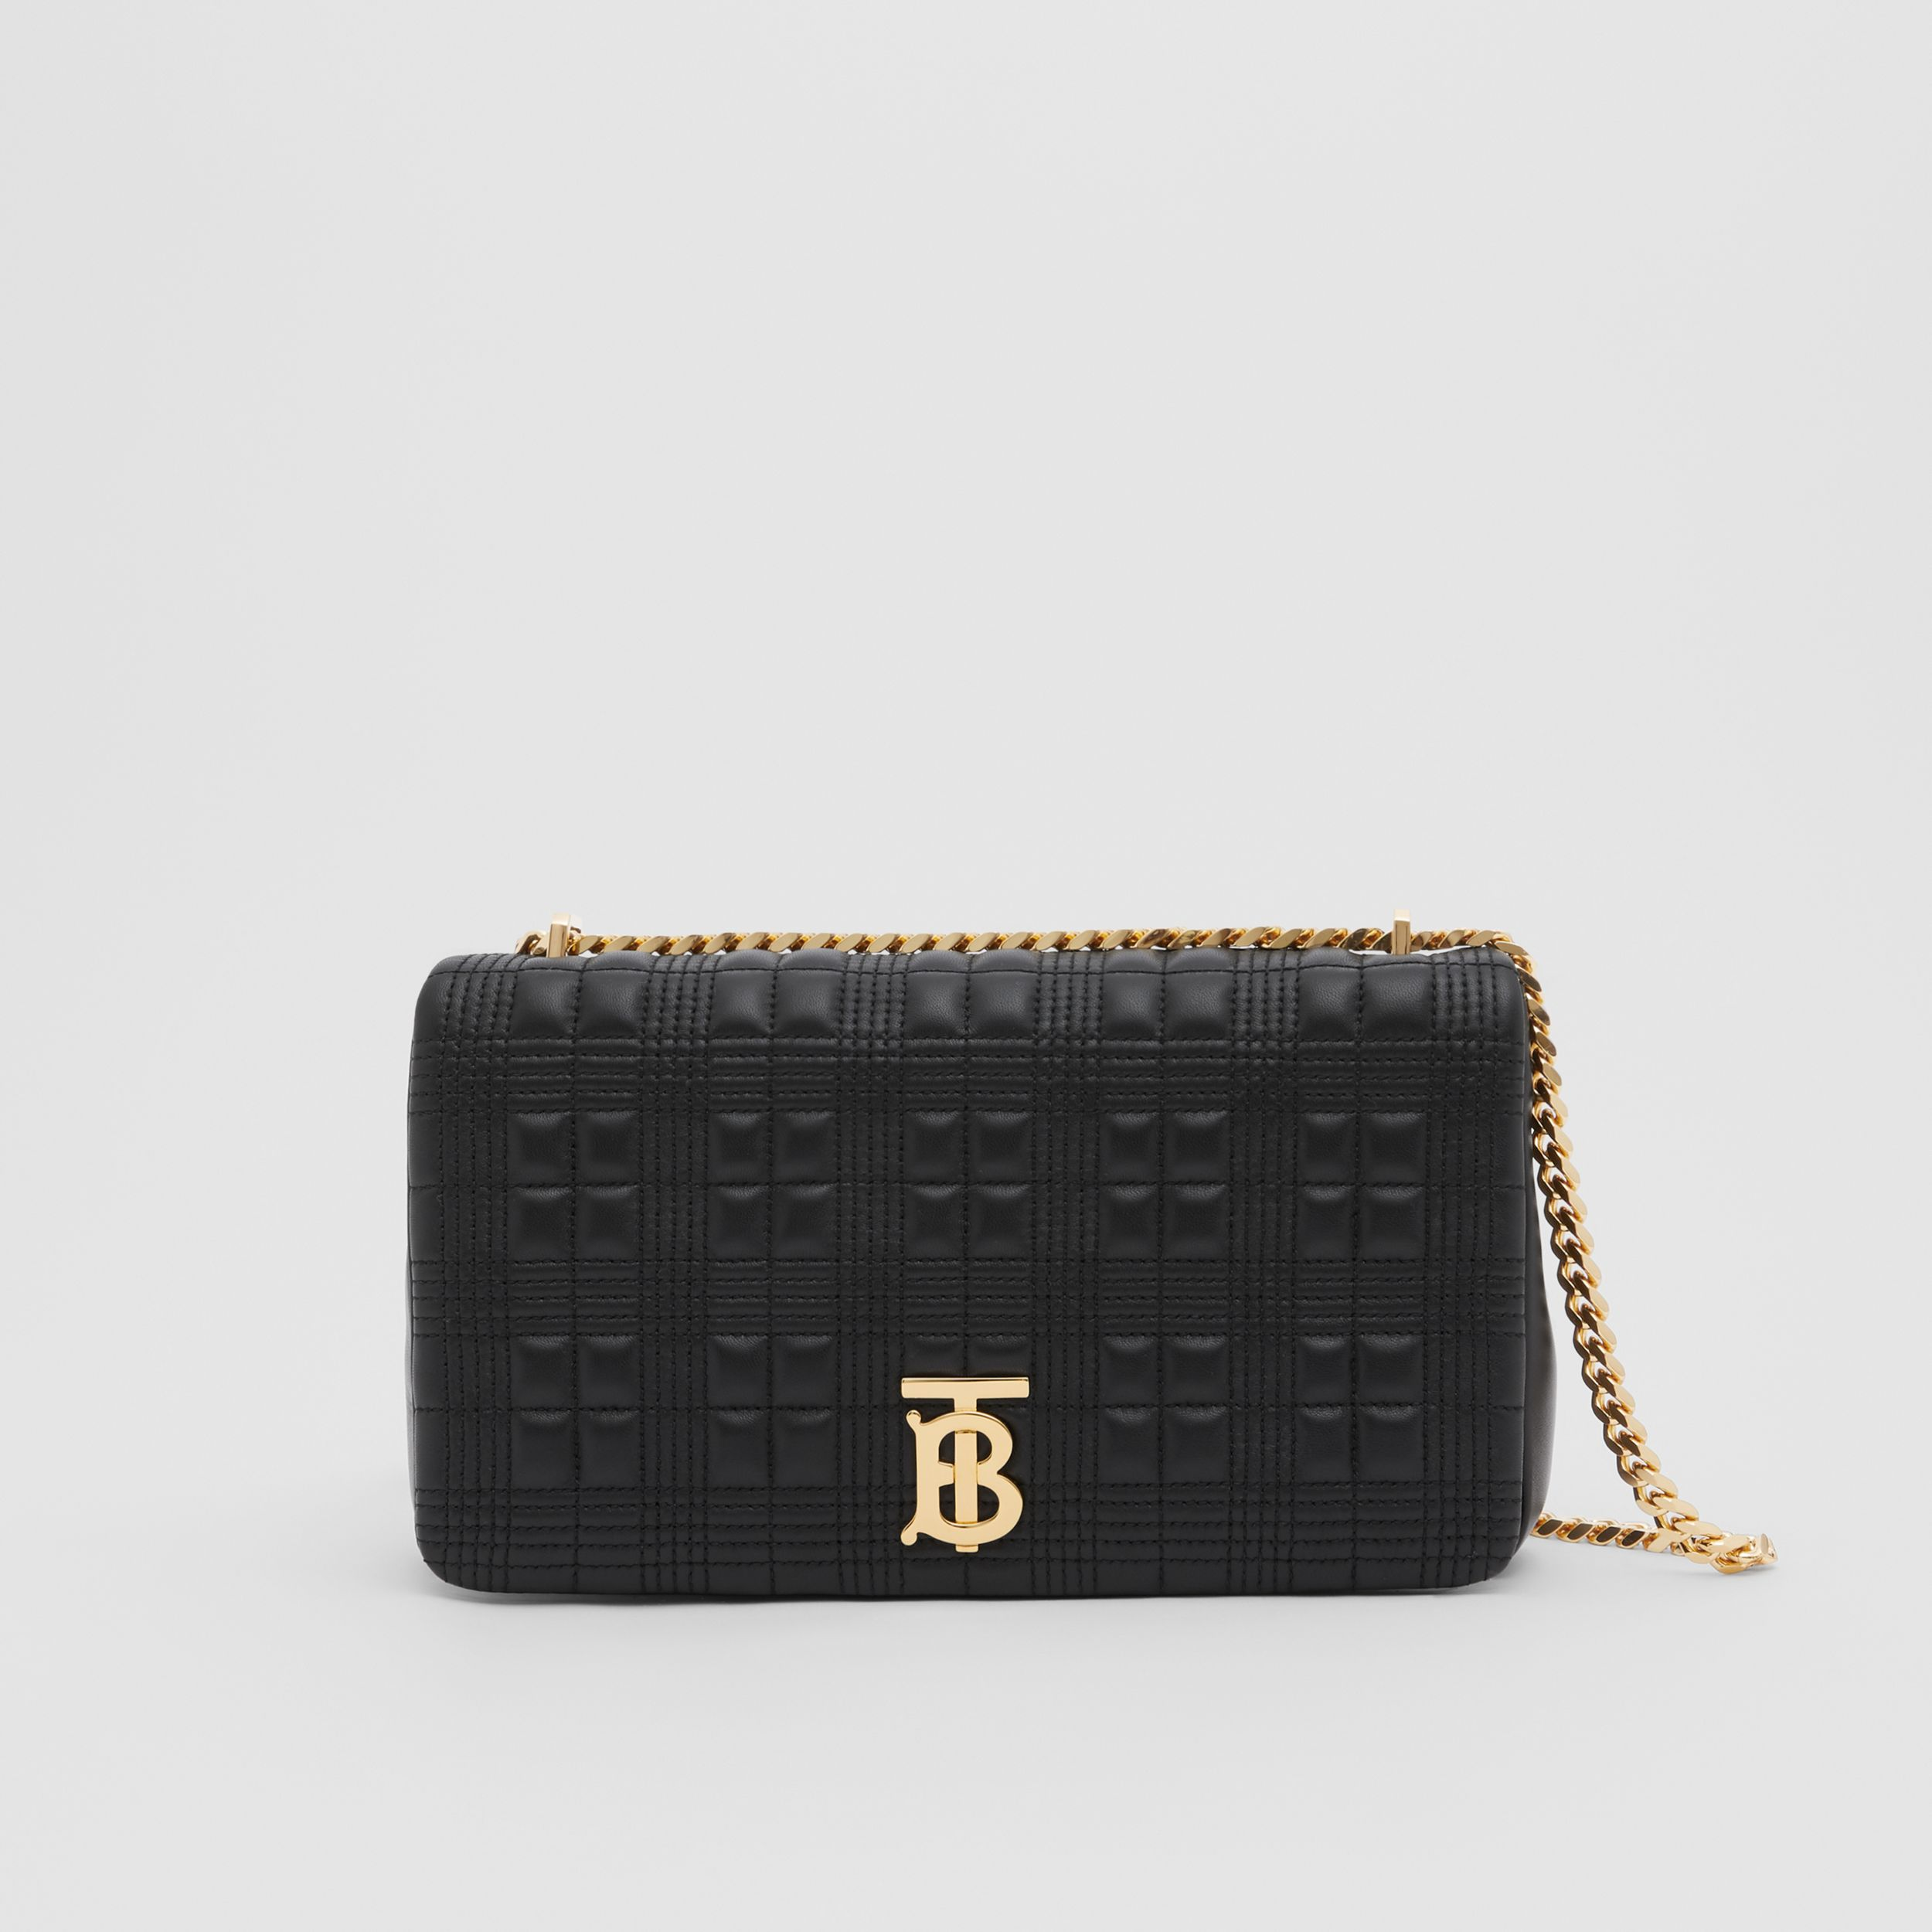 Medium Quilted Lambskin Lola Bag in Black/light Gold - Women | Burberry - 1